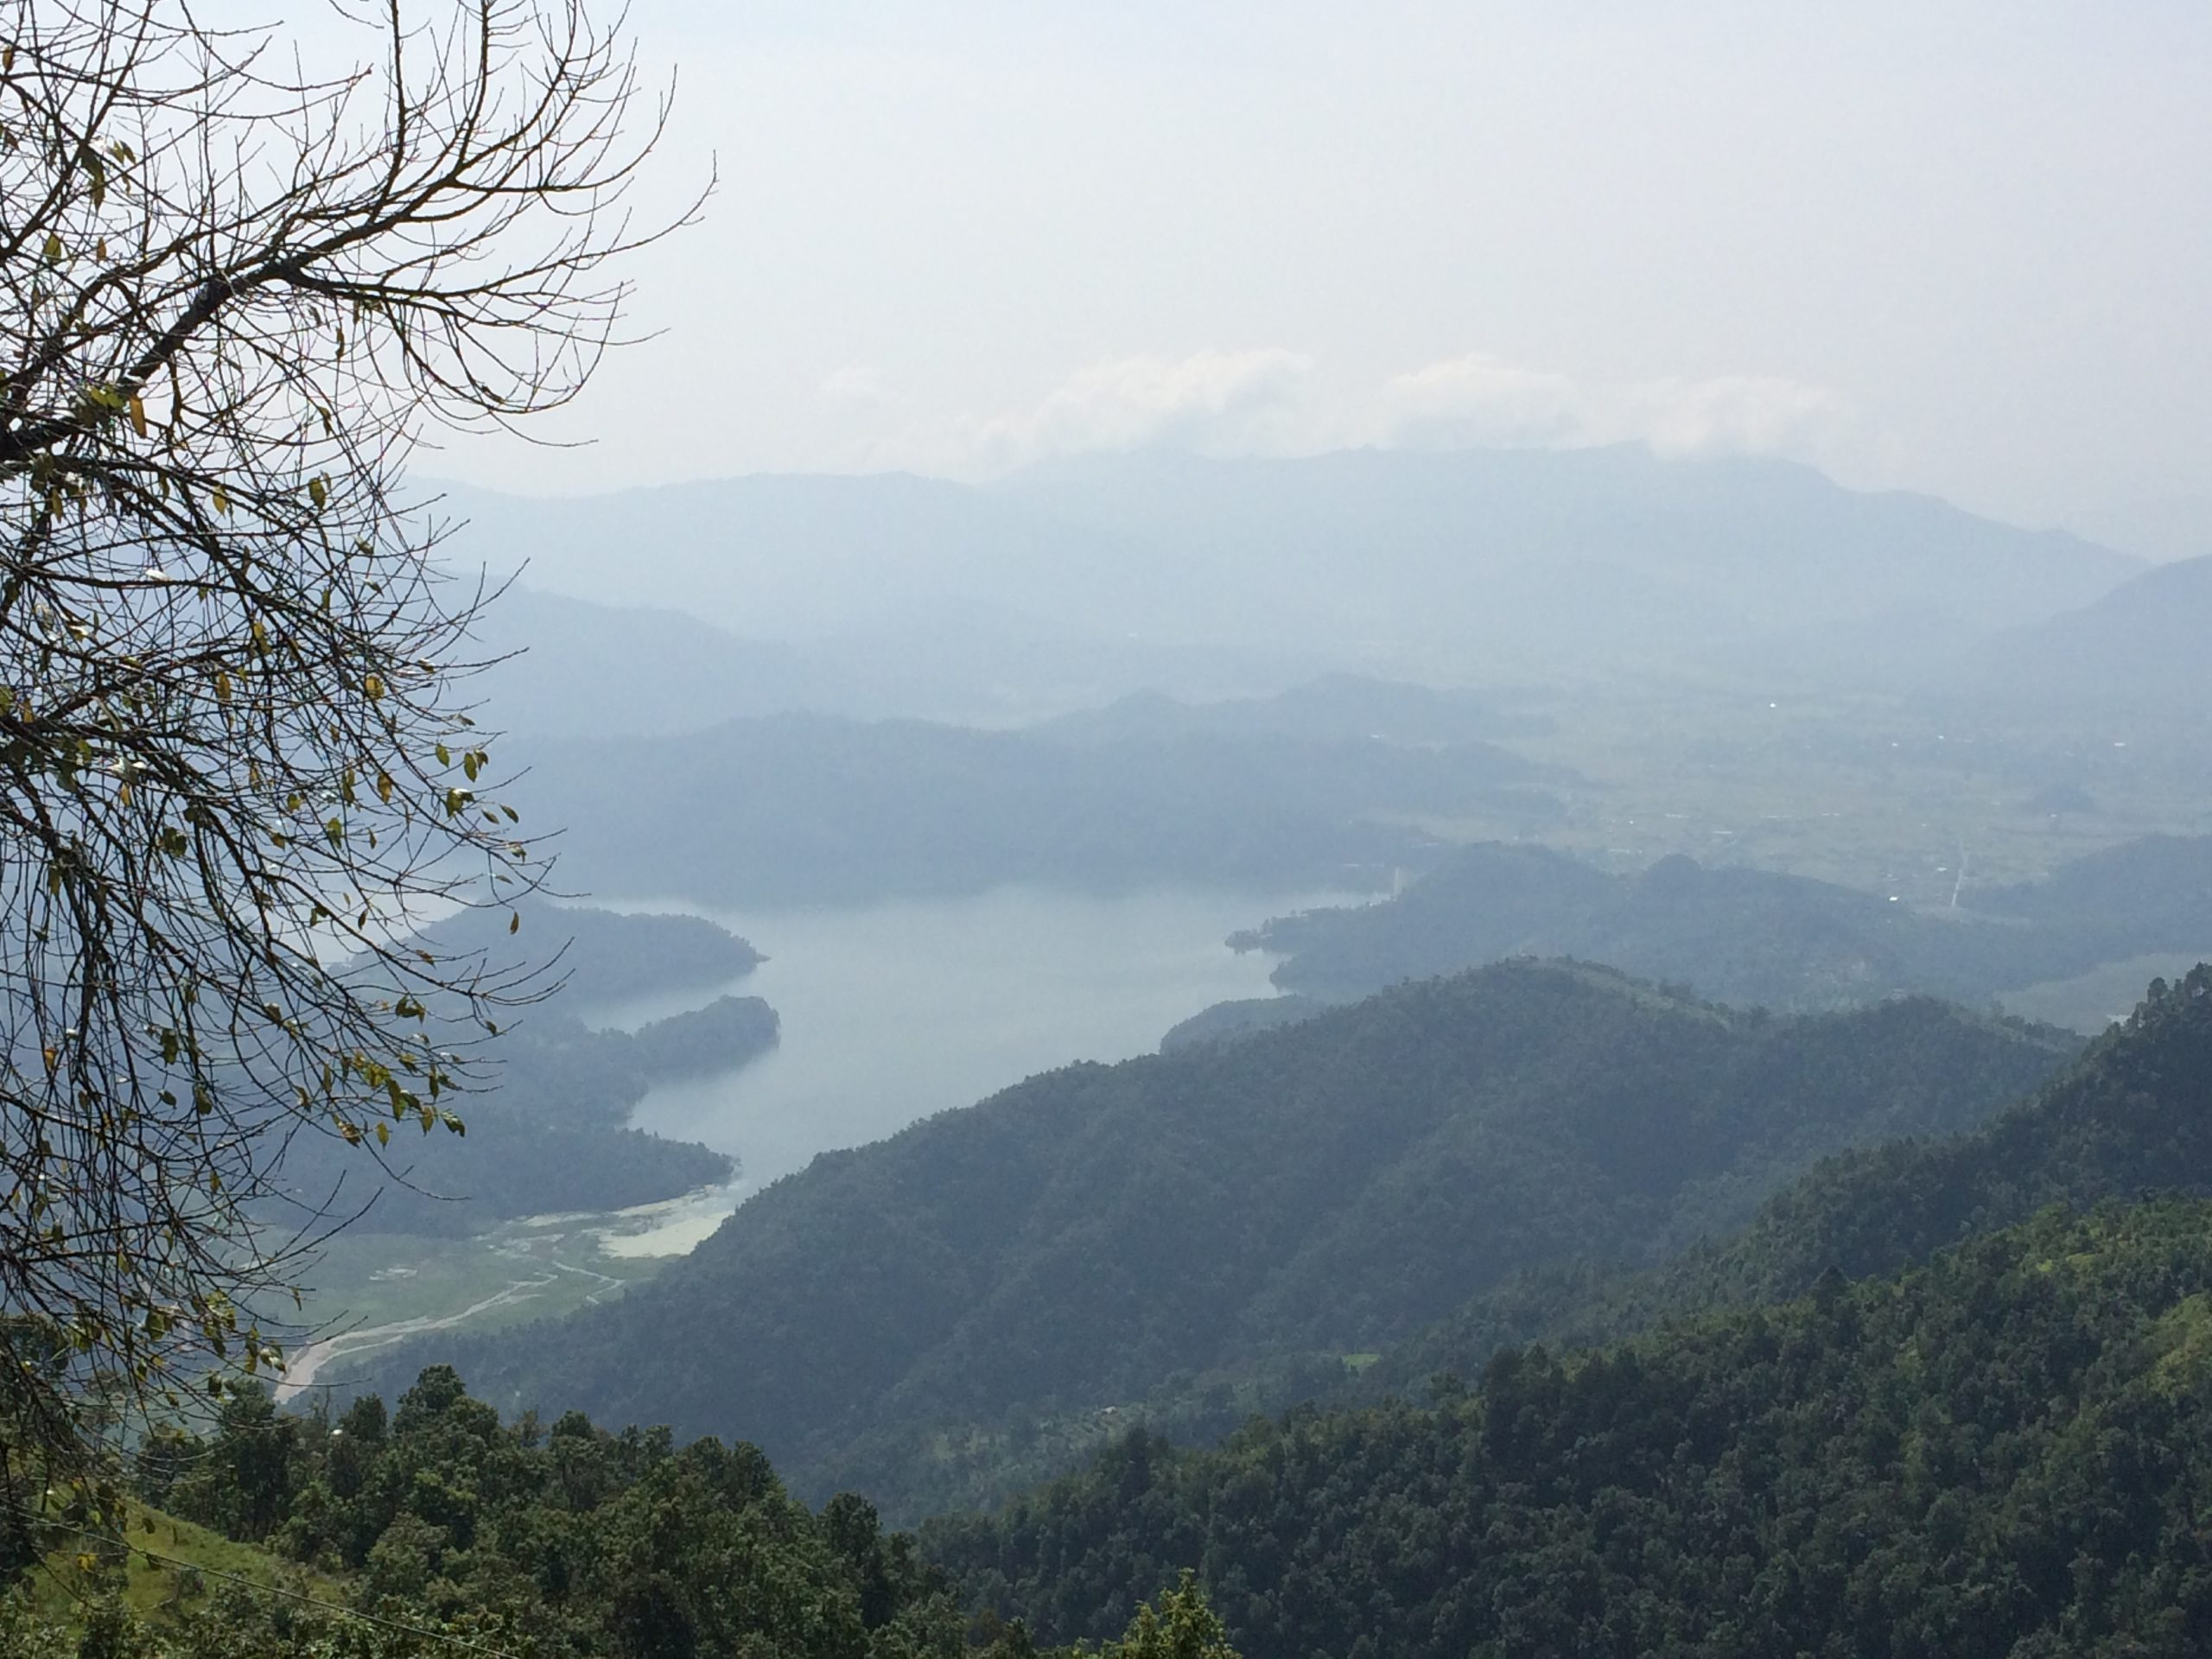 Phewa Lake from atop a hill with mountains in the distance, Pokhara Nepal